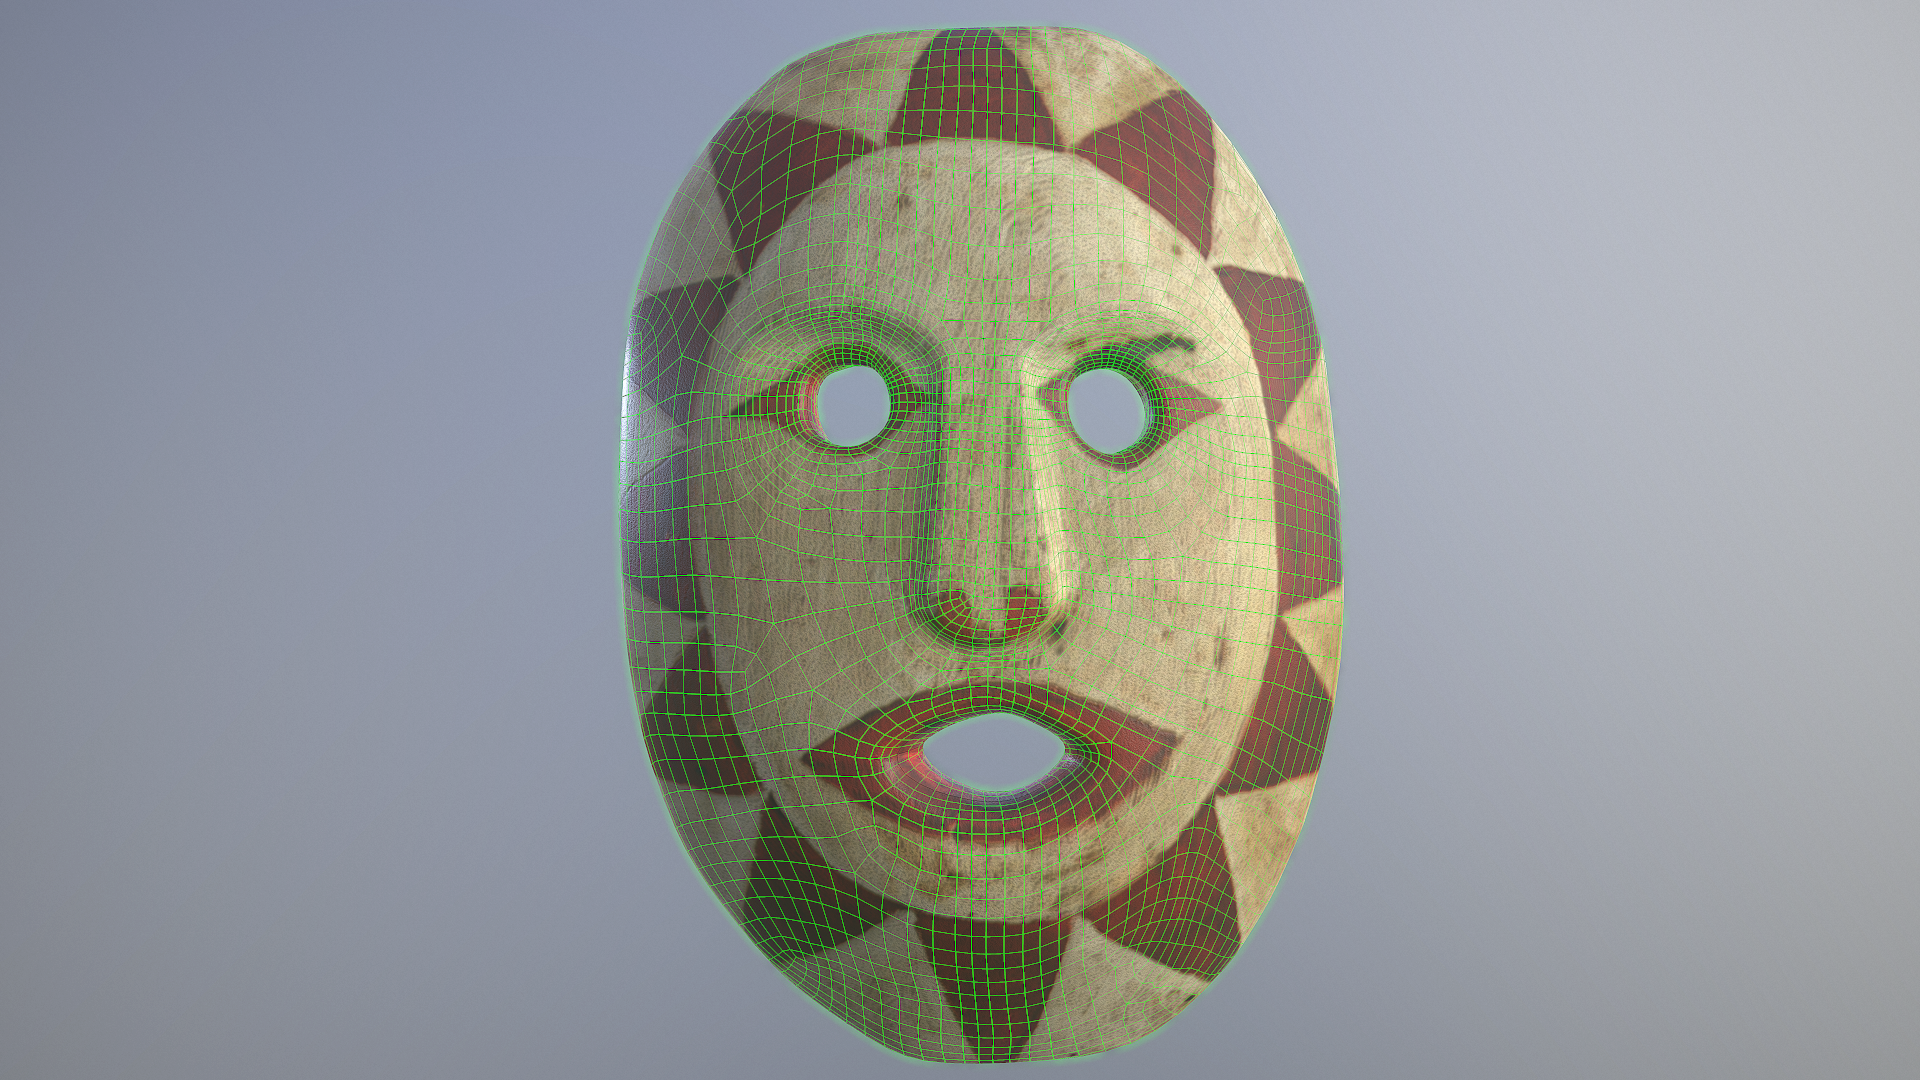 Mask by August Jack Khahtsahlano - Results After Baking, Wireframe + Textures.